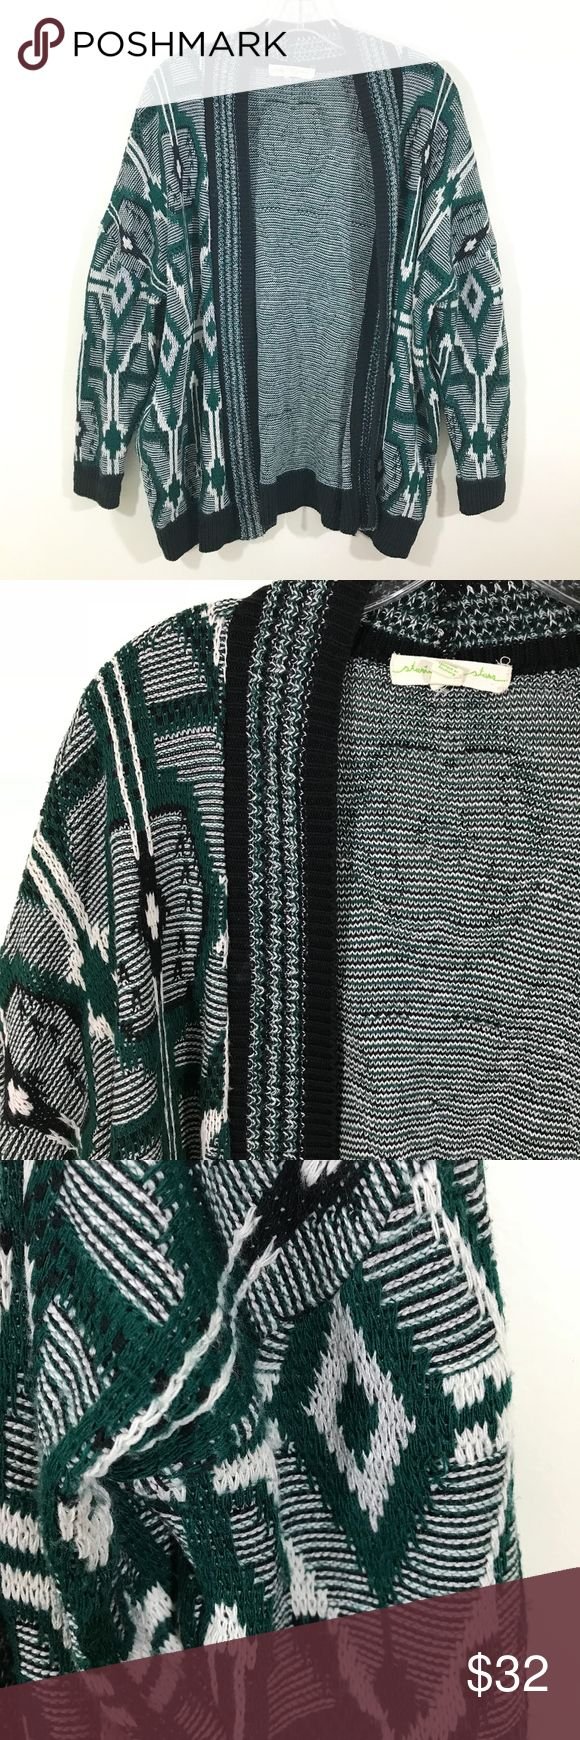 """Urban Outfitters Staring at Stars Cardigan Urban Outfitters Staring at Stars Cardigan. Super comfy oversized boyfriend fit sweater in a diamond pattern. In good used condition, some minor pilling throughout, see pics for condition details.  27.5"""" Long Size Small  Offers welcome, no trades. Bundle & Save! Urban Outfitters Sweaters Cardigans"""